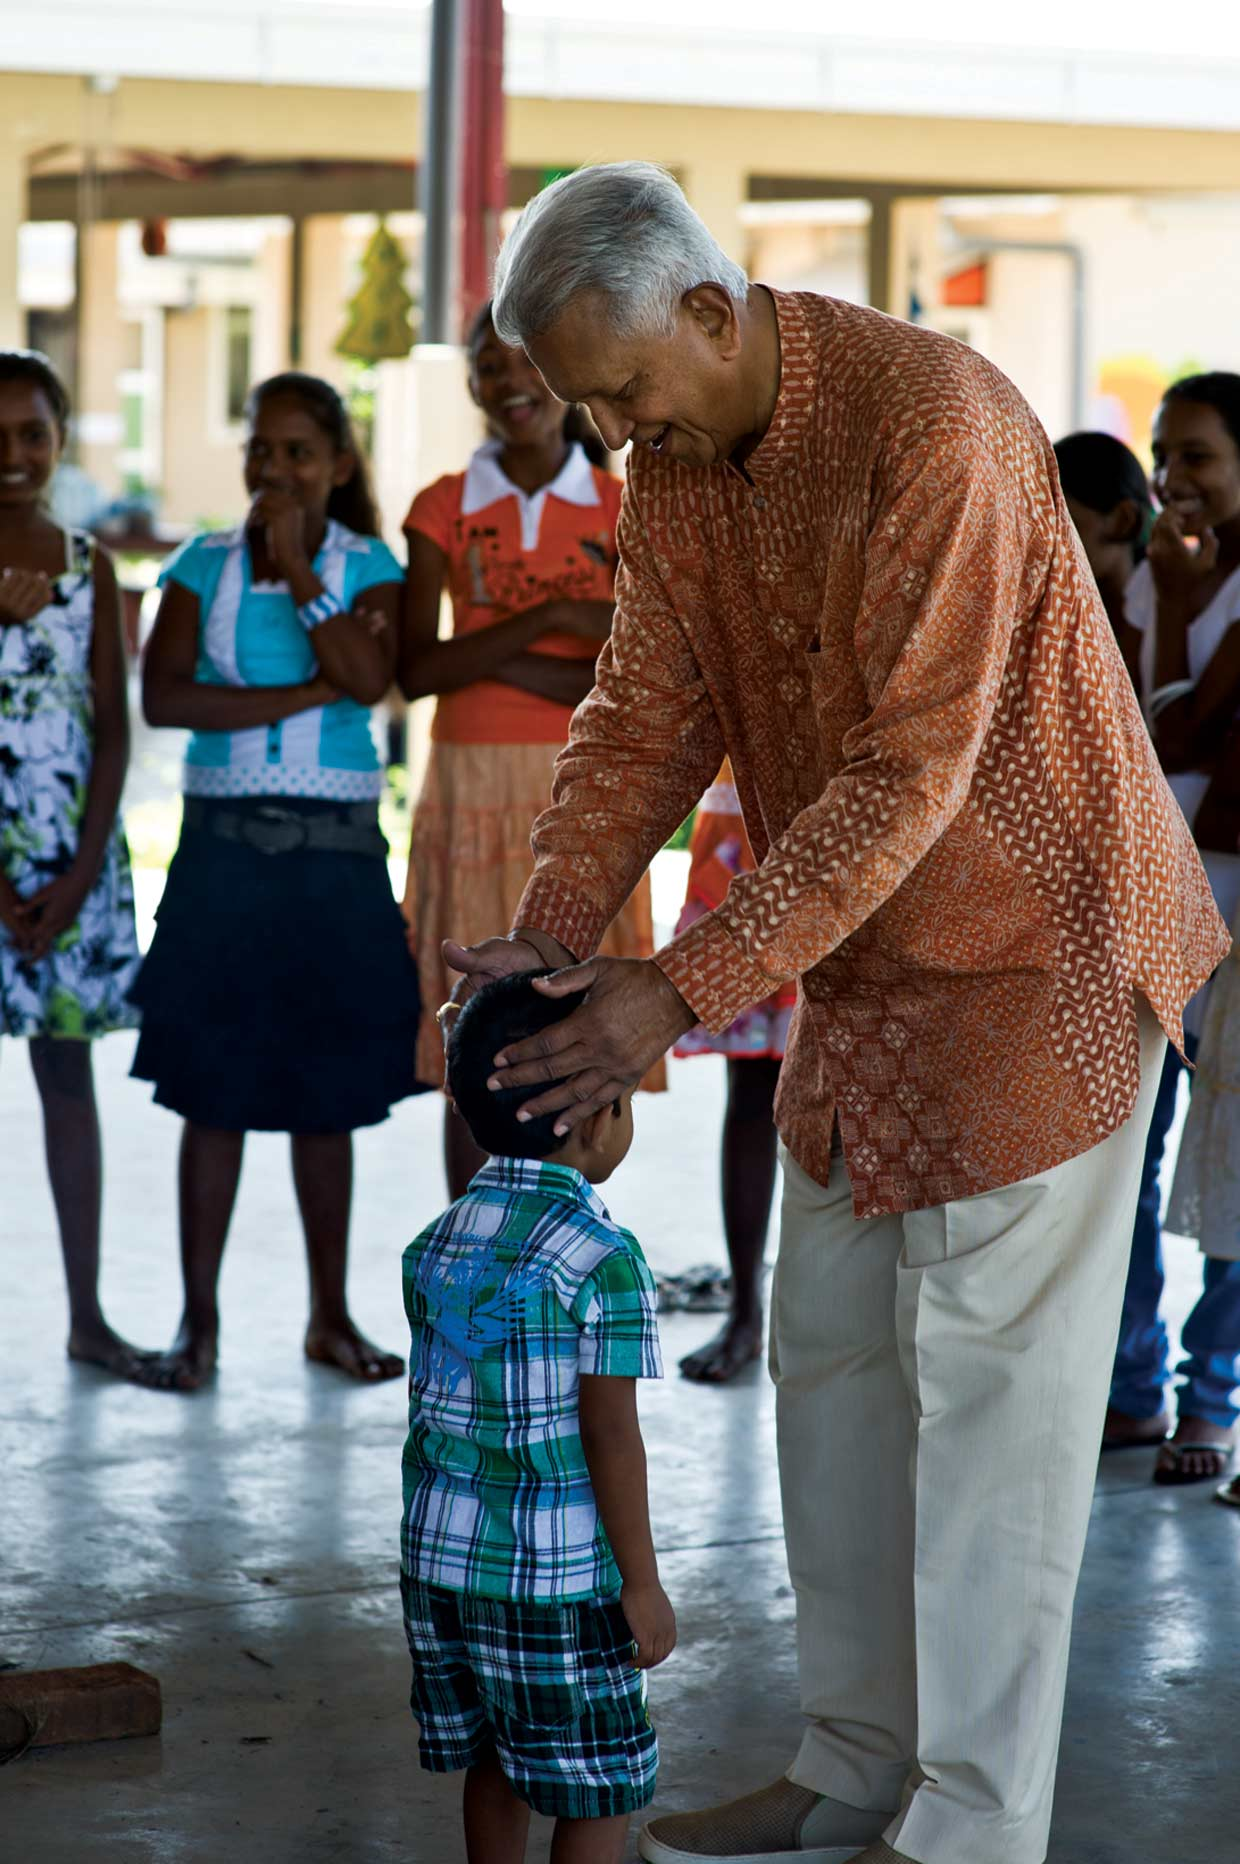 """""""The wellbeing of children is an important part of Dilmah's work"""" Merrill J. Fernando, Settlor of the Merrill J. Fernando Charitable Foundation. The MJF Kids Programme supports over 750 children island wide with education and leadership training since 2006."""